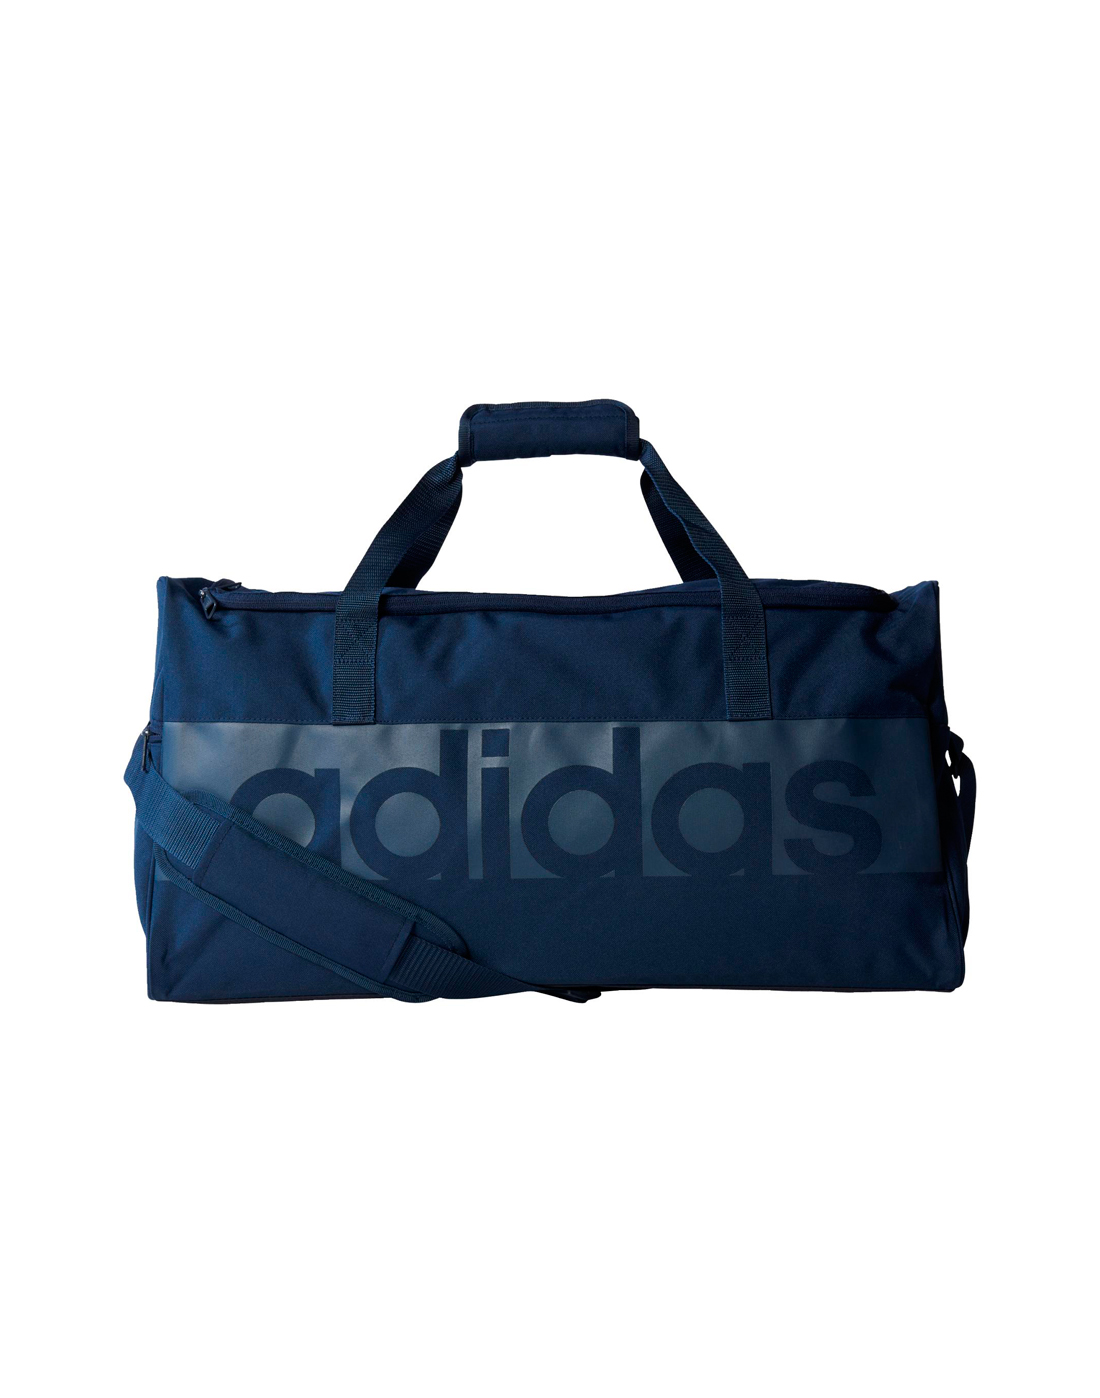 449d60ac67 adidas. Linear Teambag Medium. Linear Teambag Medium ...